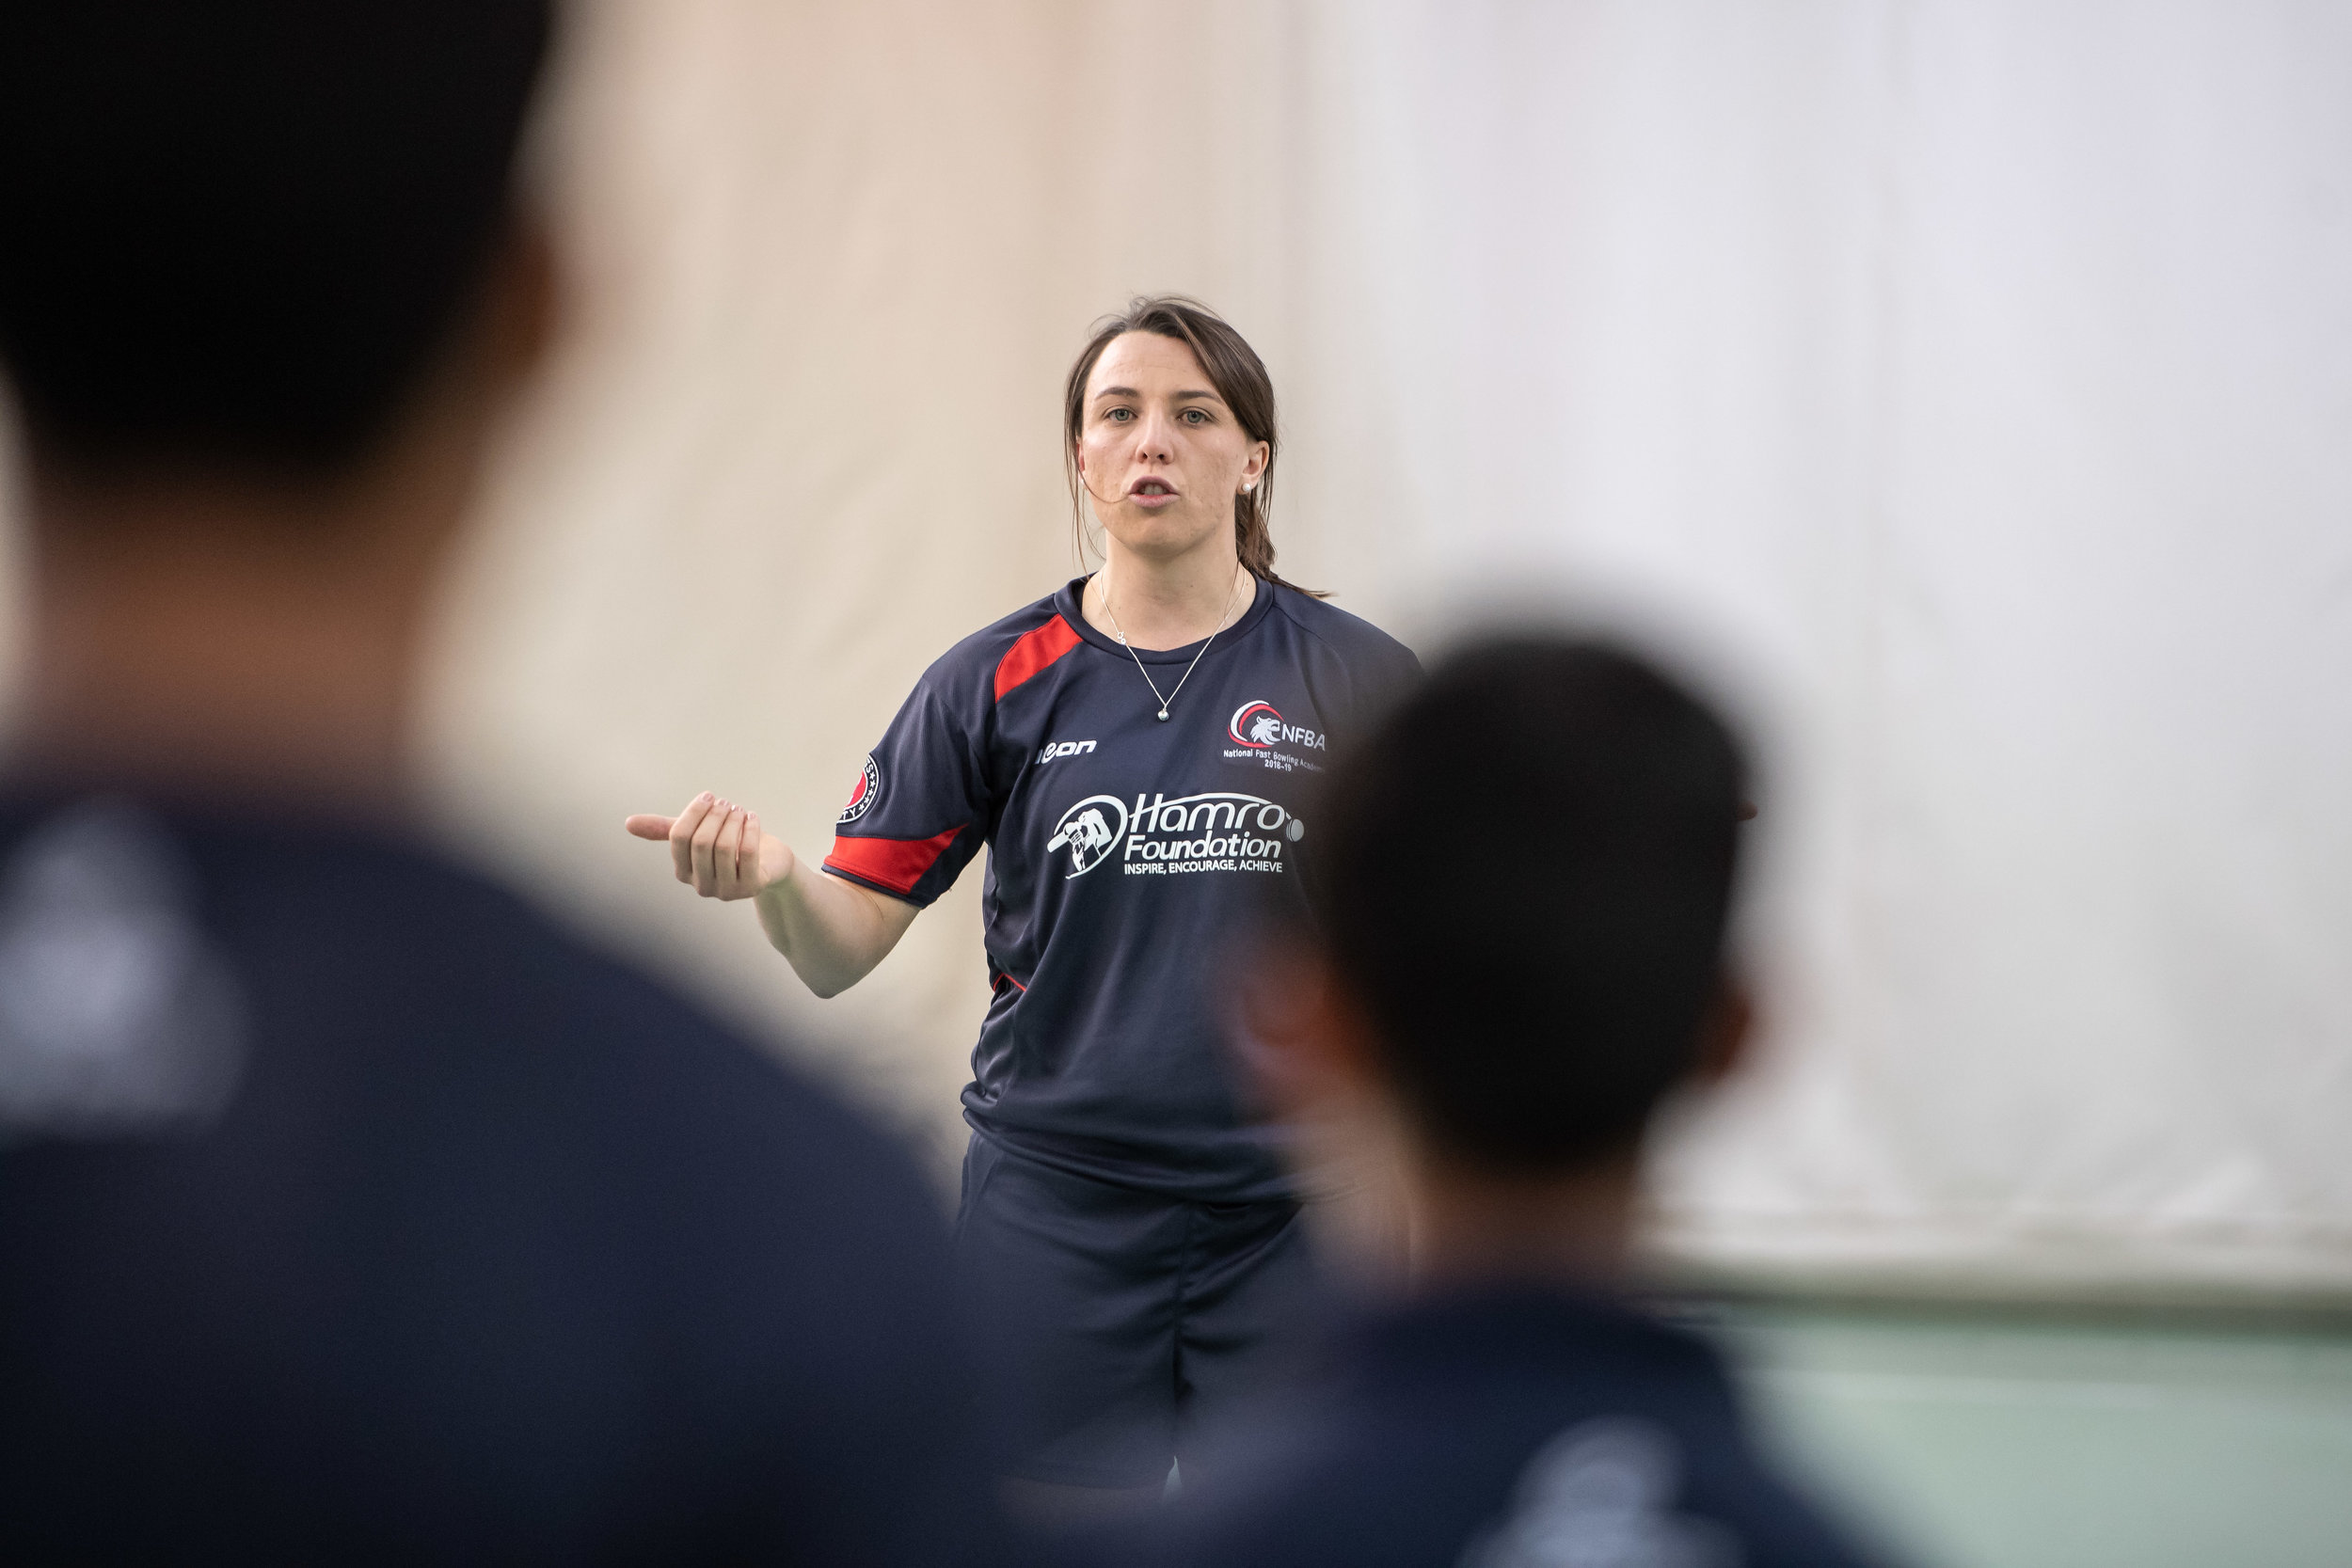 PSI_National_Fast_Bowling_Academy_21OCT18_SW_142.JPG